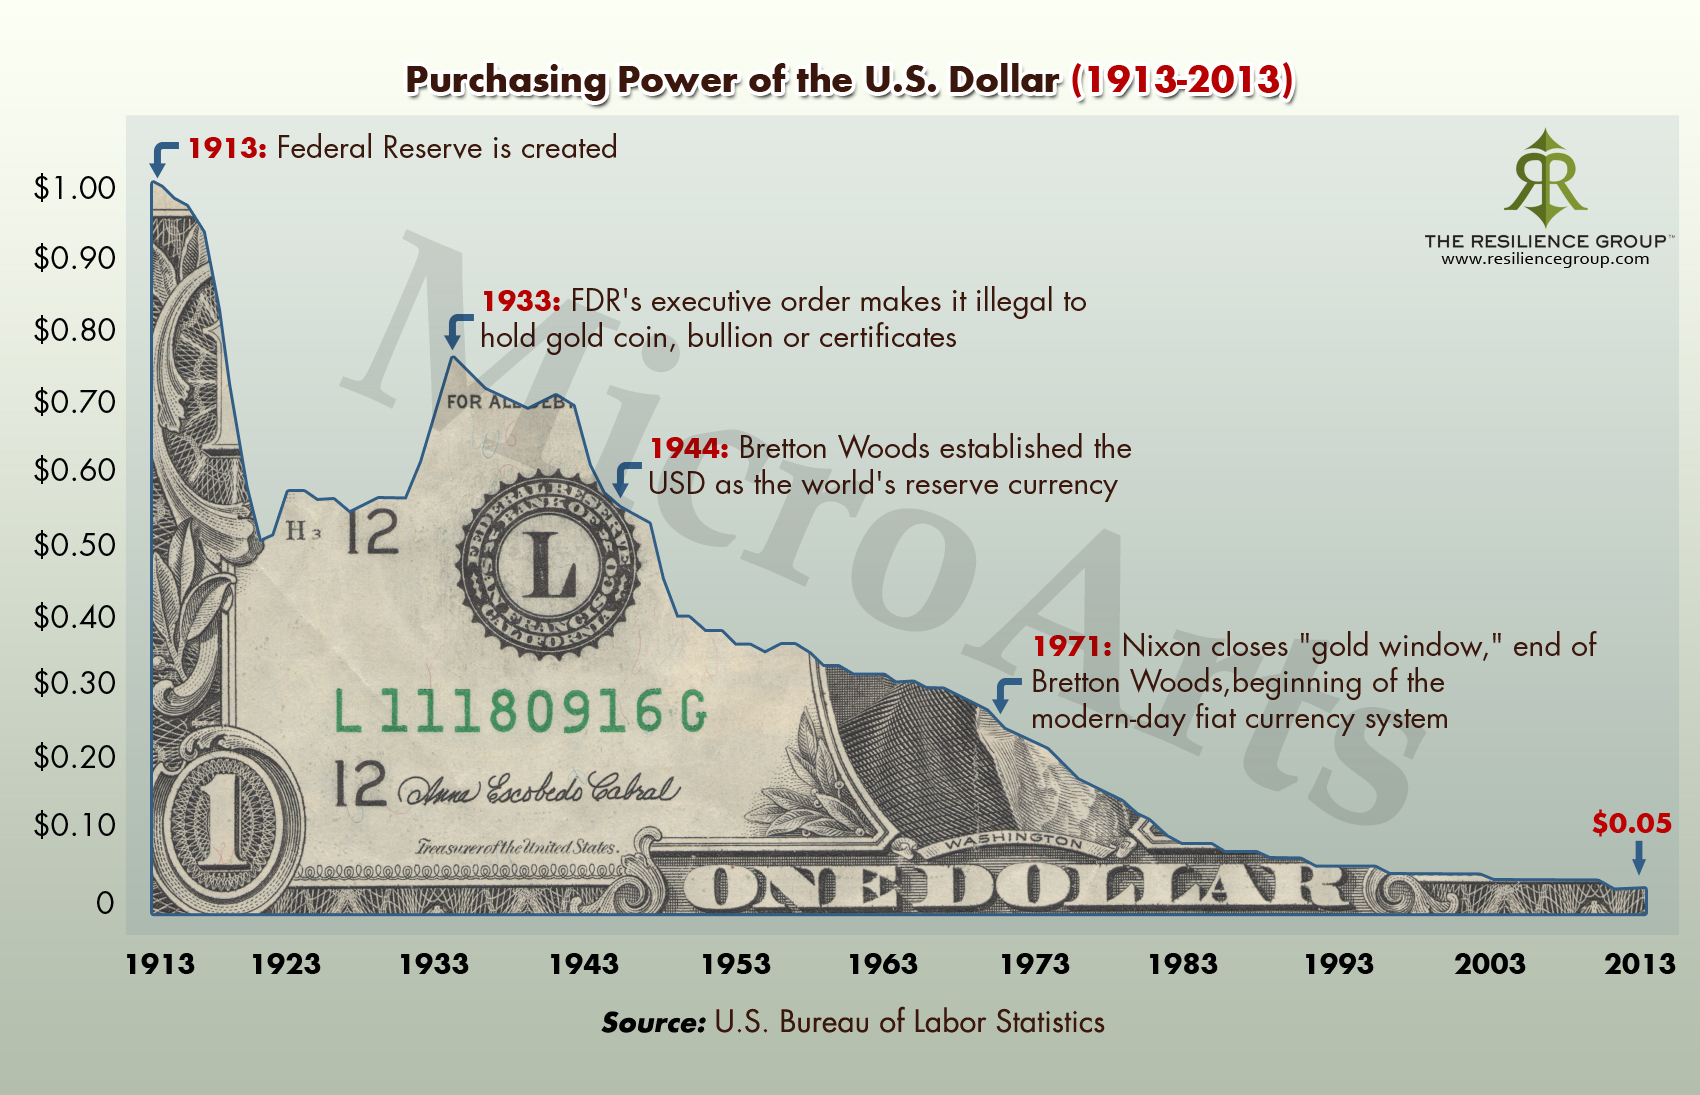 purchasing-power-of-the-us-dollar-1913-to-2013_517962b78ea3c.jpg